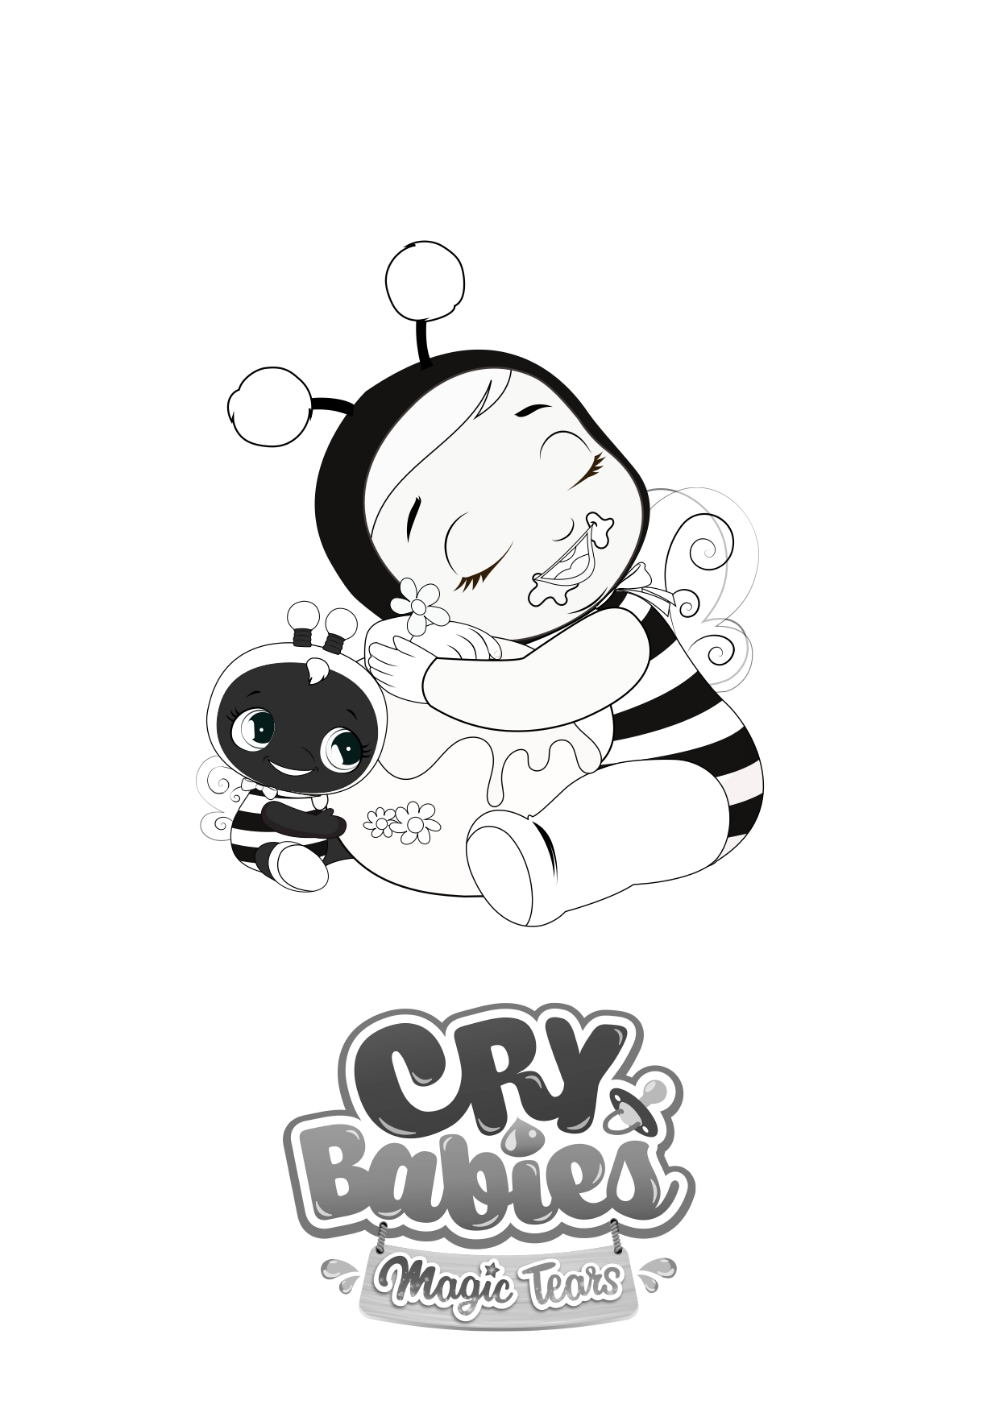 Colorions Cry Babies Magic Tears Nel 2020 Disegni Bambini